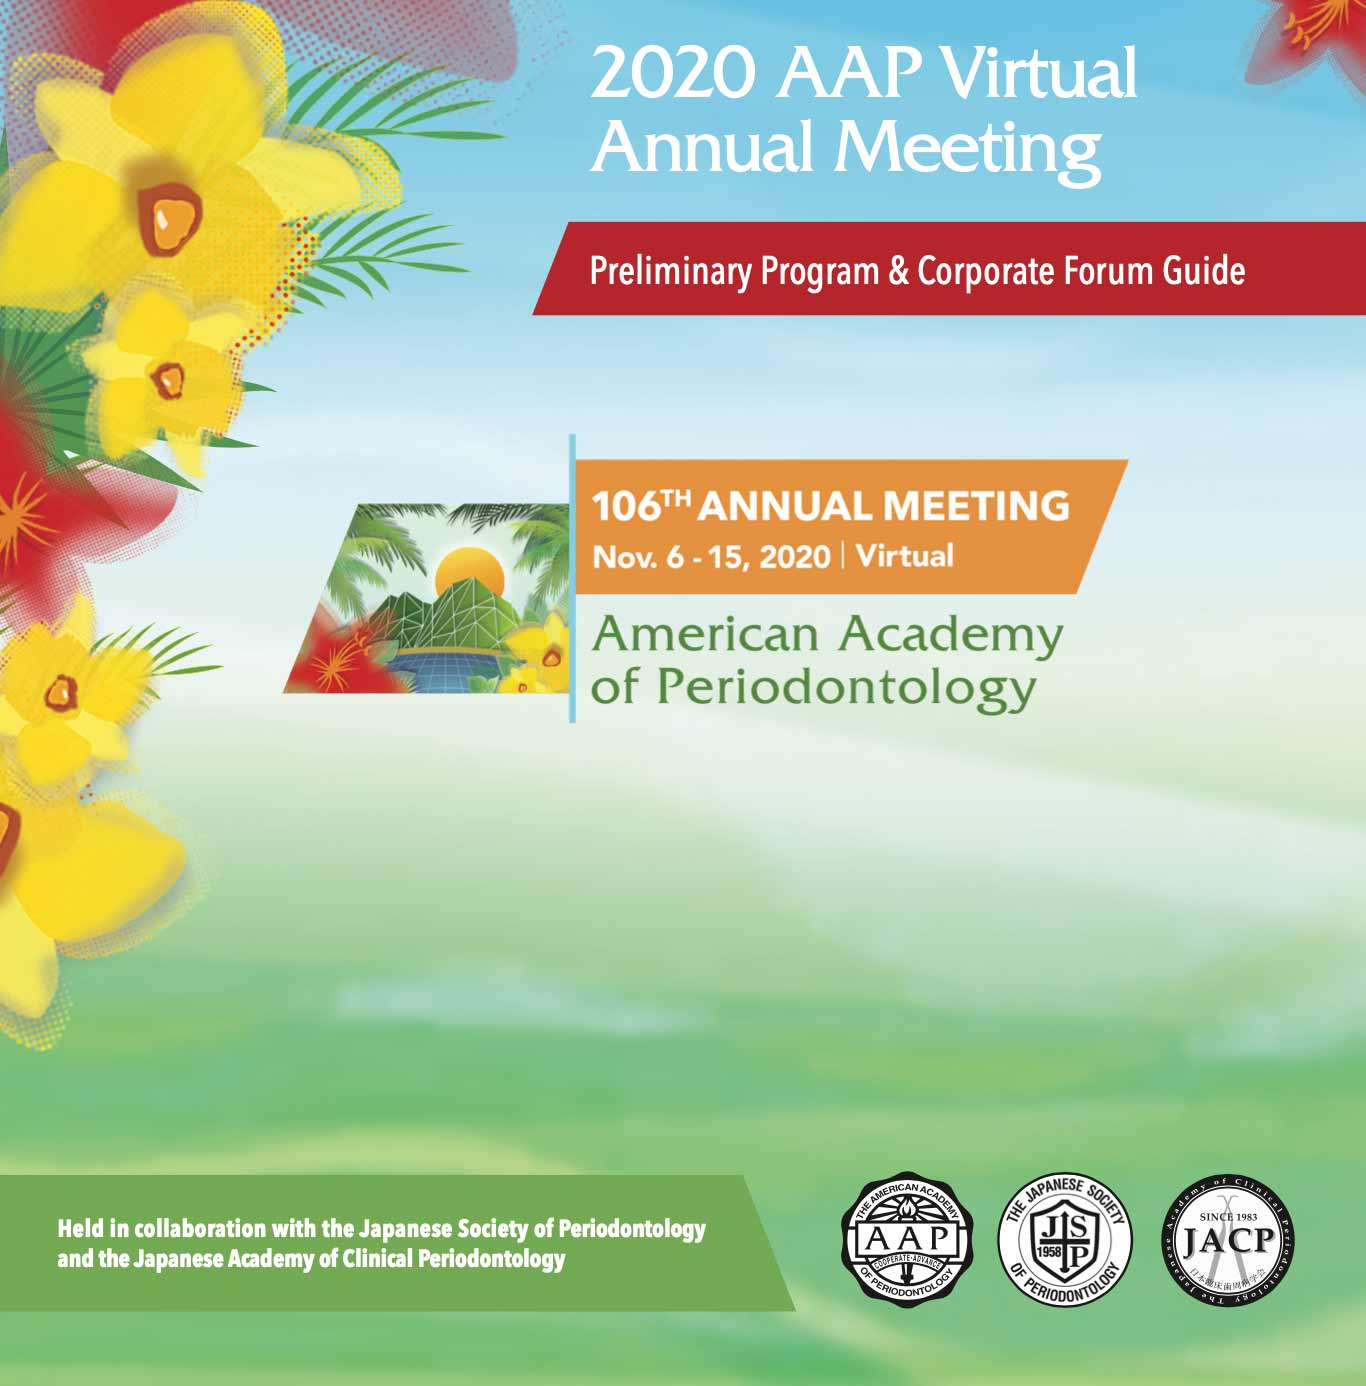 AAP American Academy of Periodontology Annual Meeting 2020